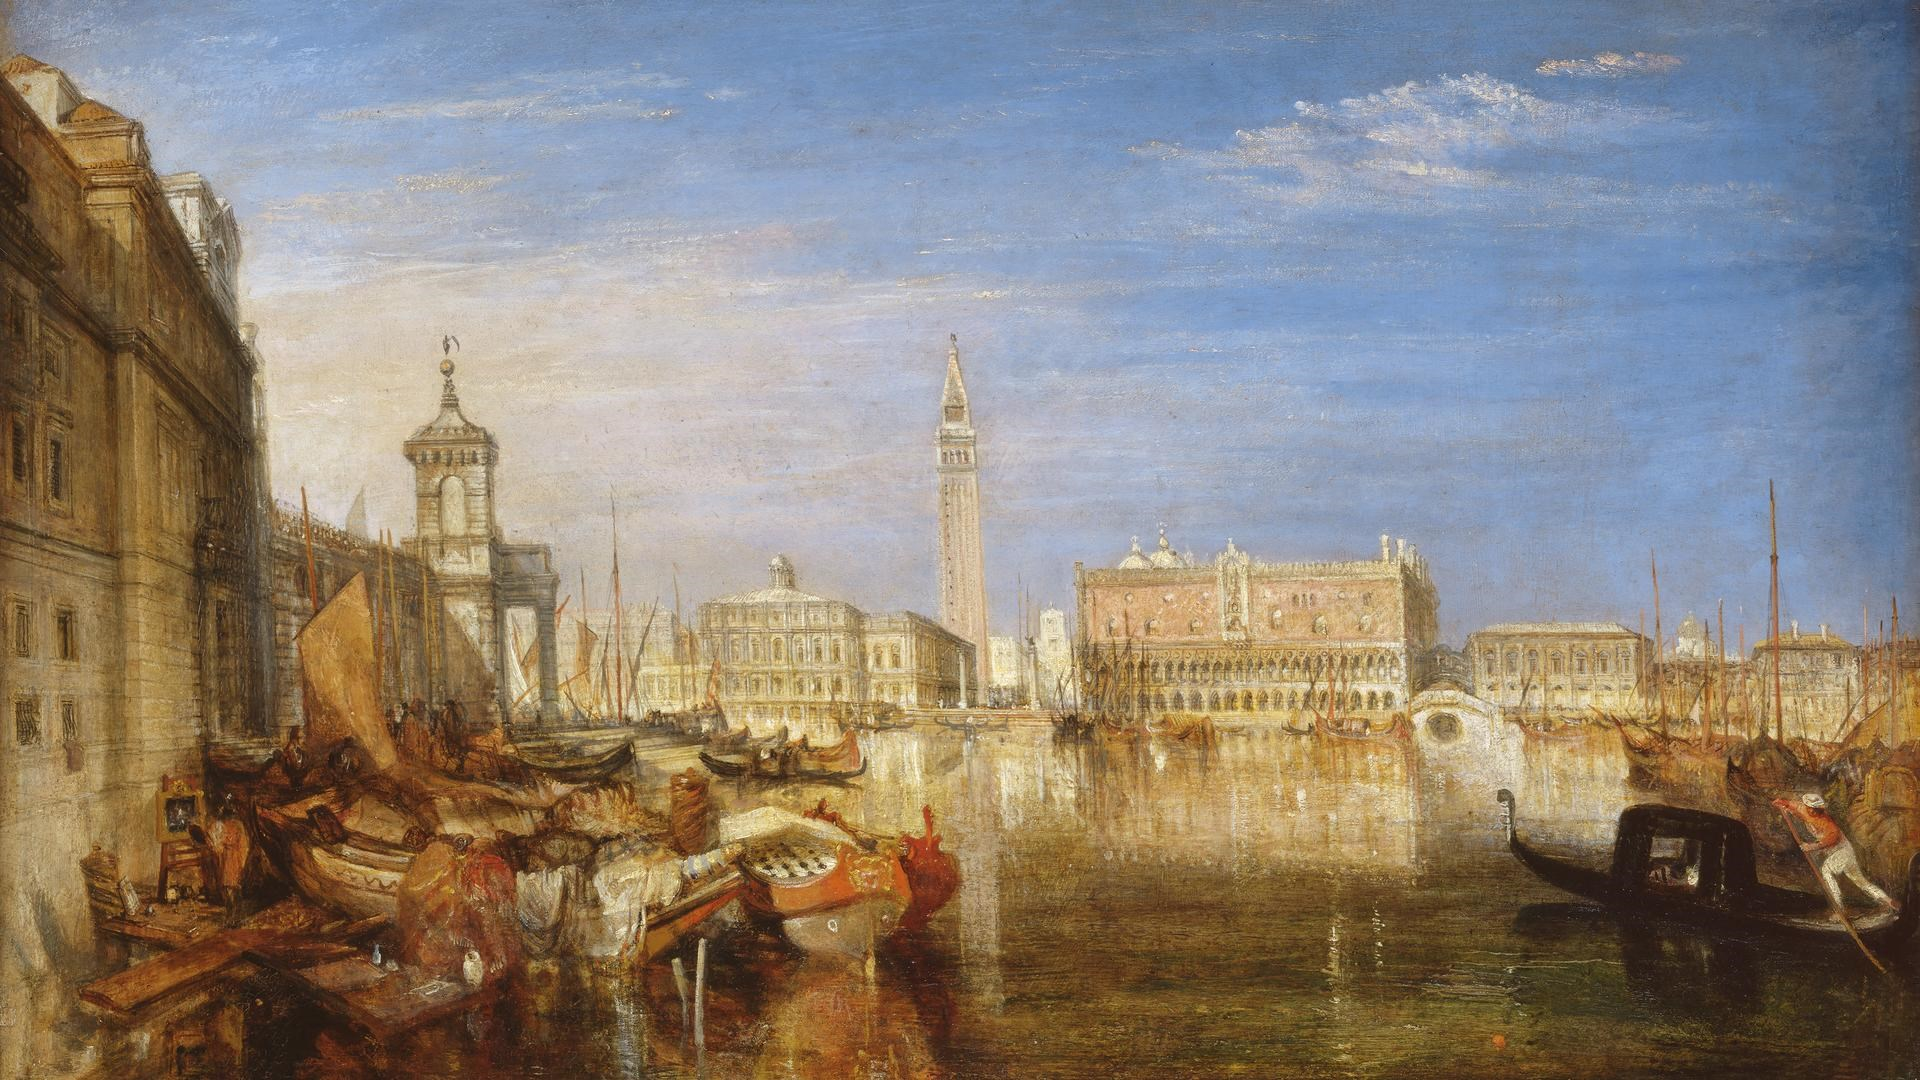 Bridge of Sighs, Ducal Palace and Custom House, Venice: Canaletti Painting by Joseph Mallord William Turner